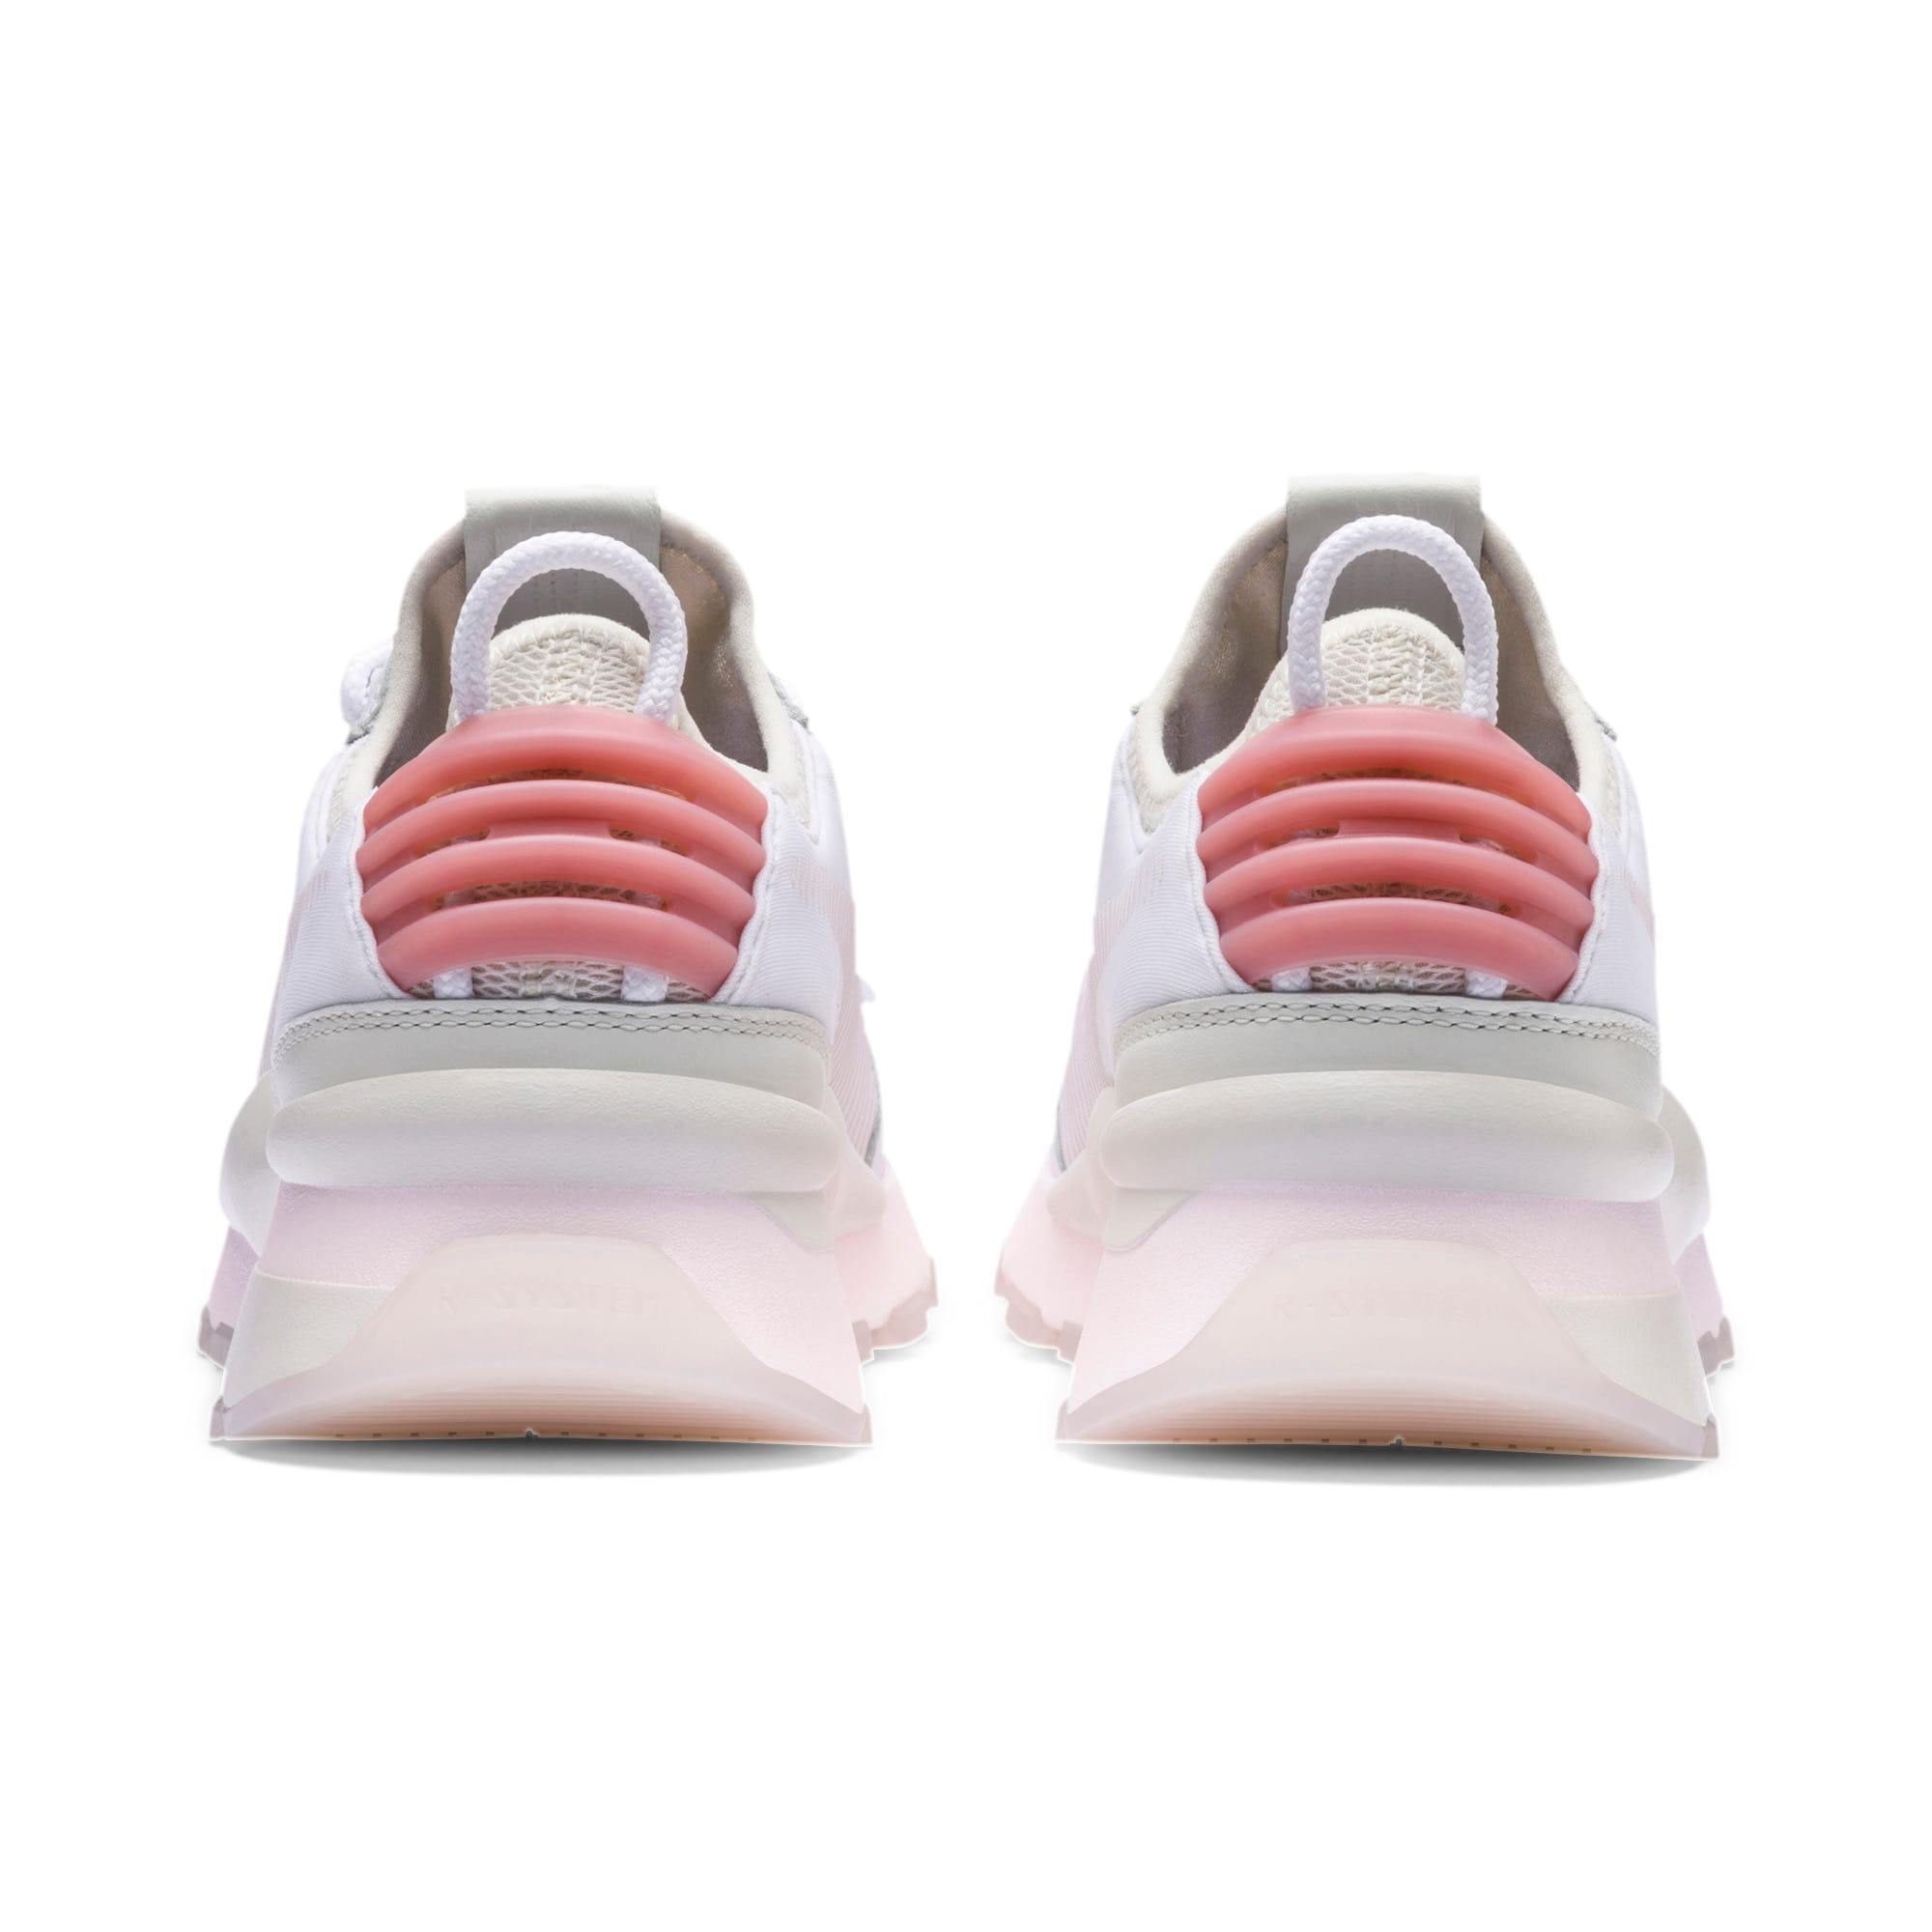 RS-0 TRACKS Trainers, Puma White-Marshmallow, large